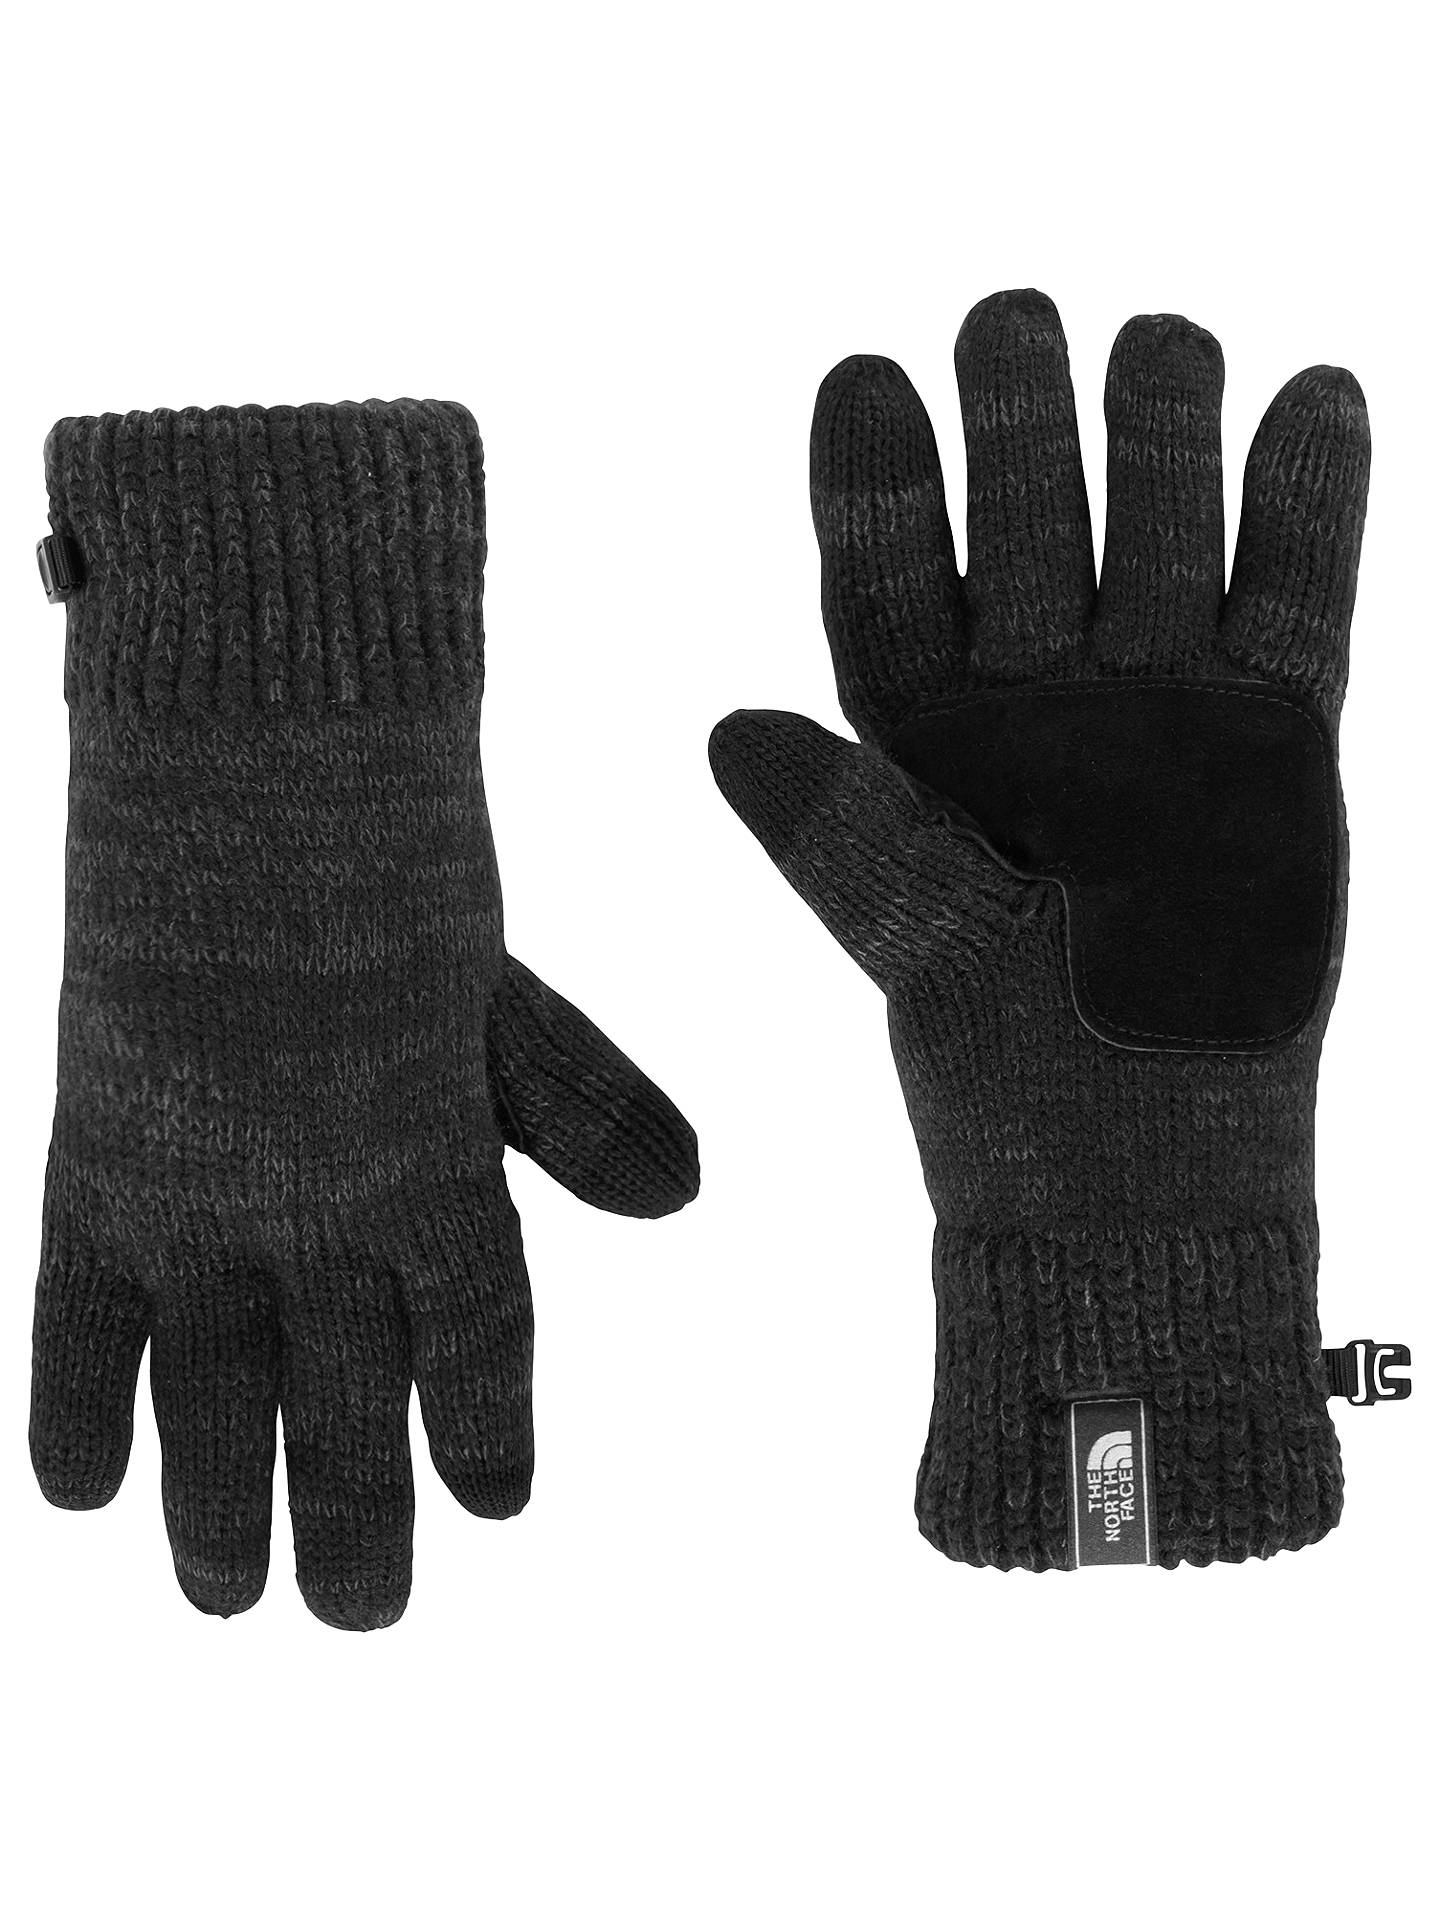 398a9d65774c47 The North Face Salty Dog Knitted Etip Gloves, Grey at John Lewis ...